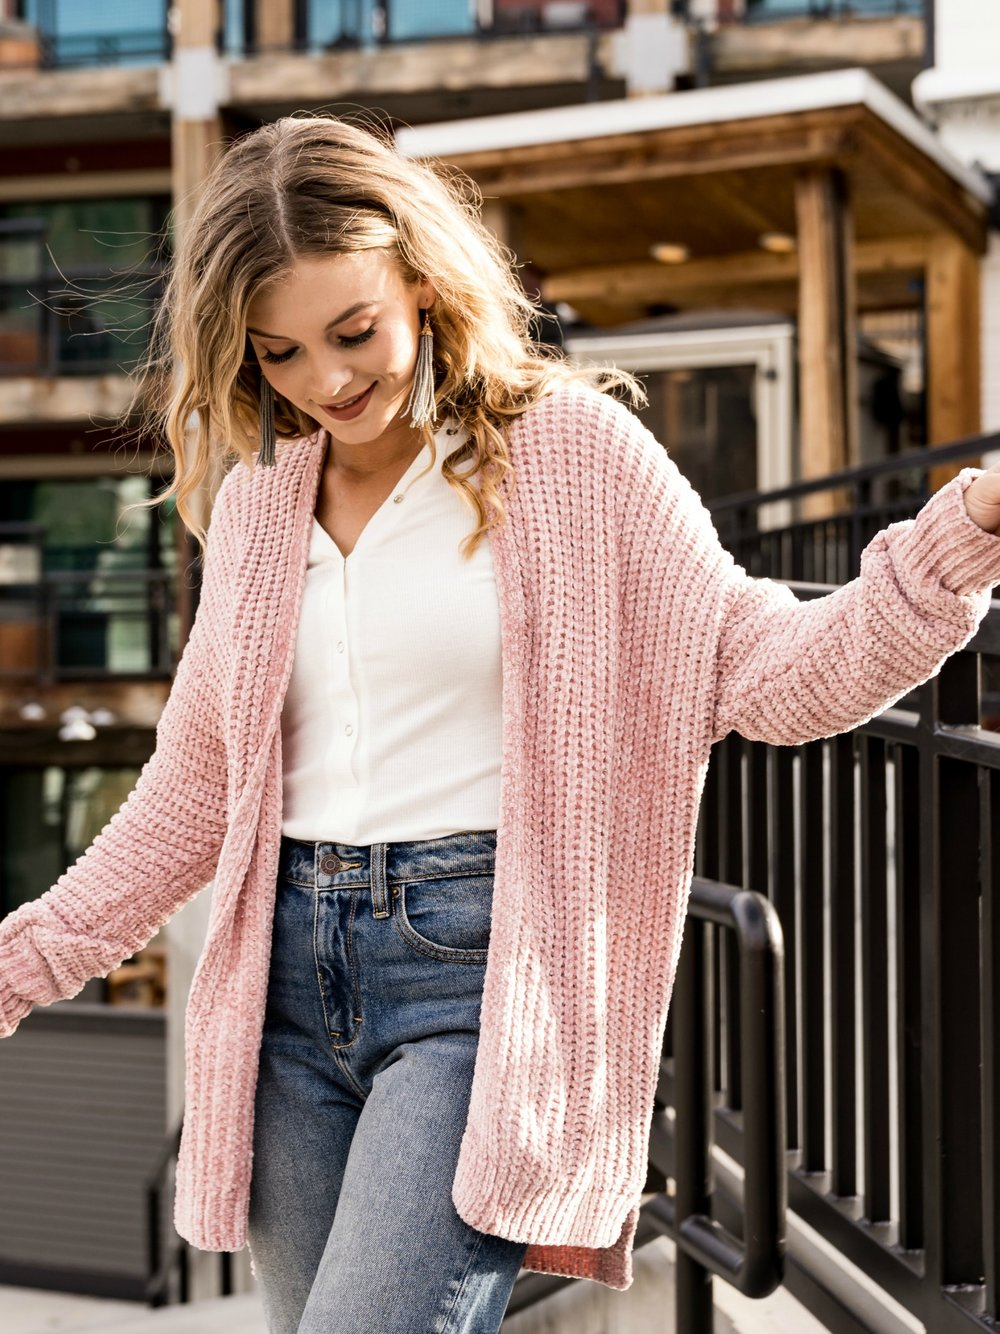 Chenille Cardigan in  Blush    Also available in  Wine  and  Cinnamon .